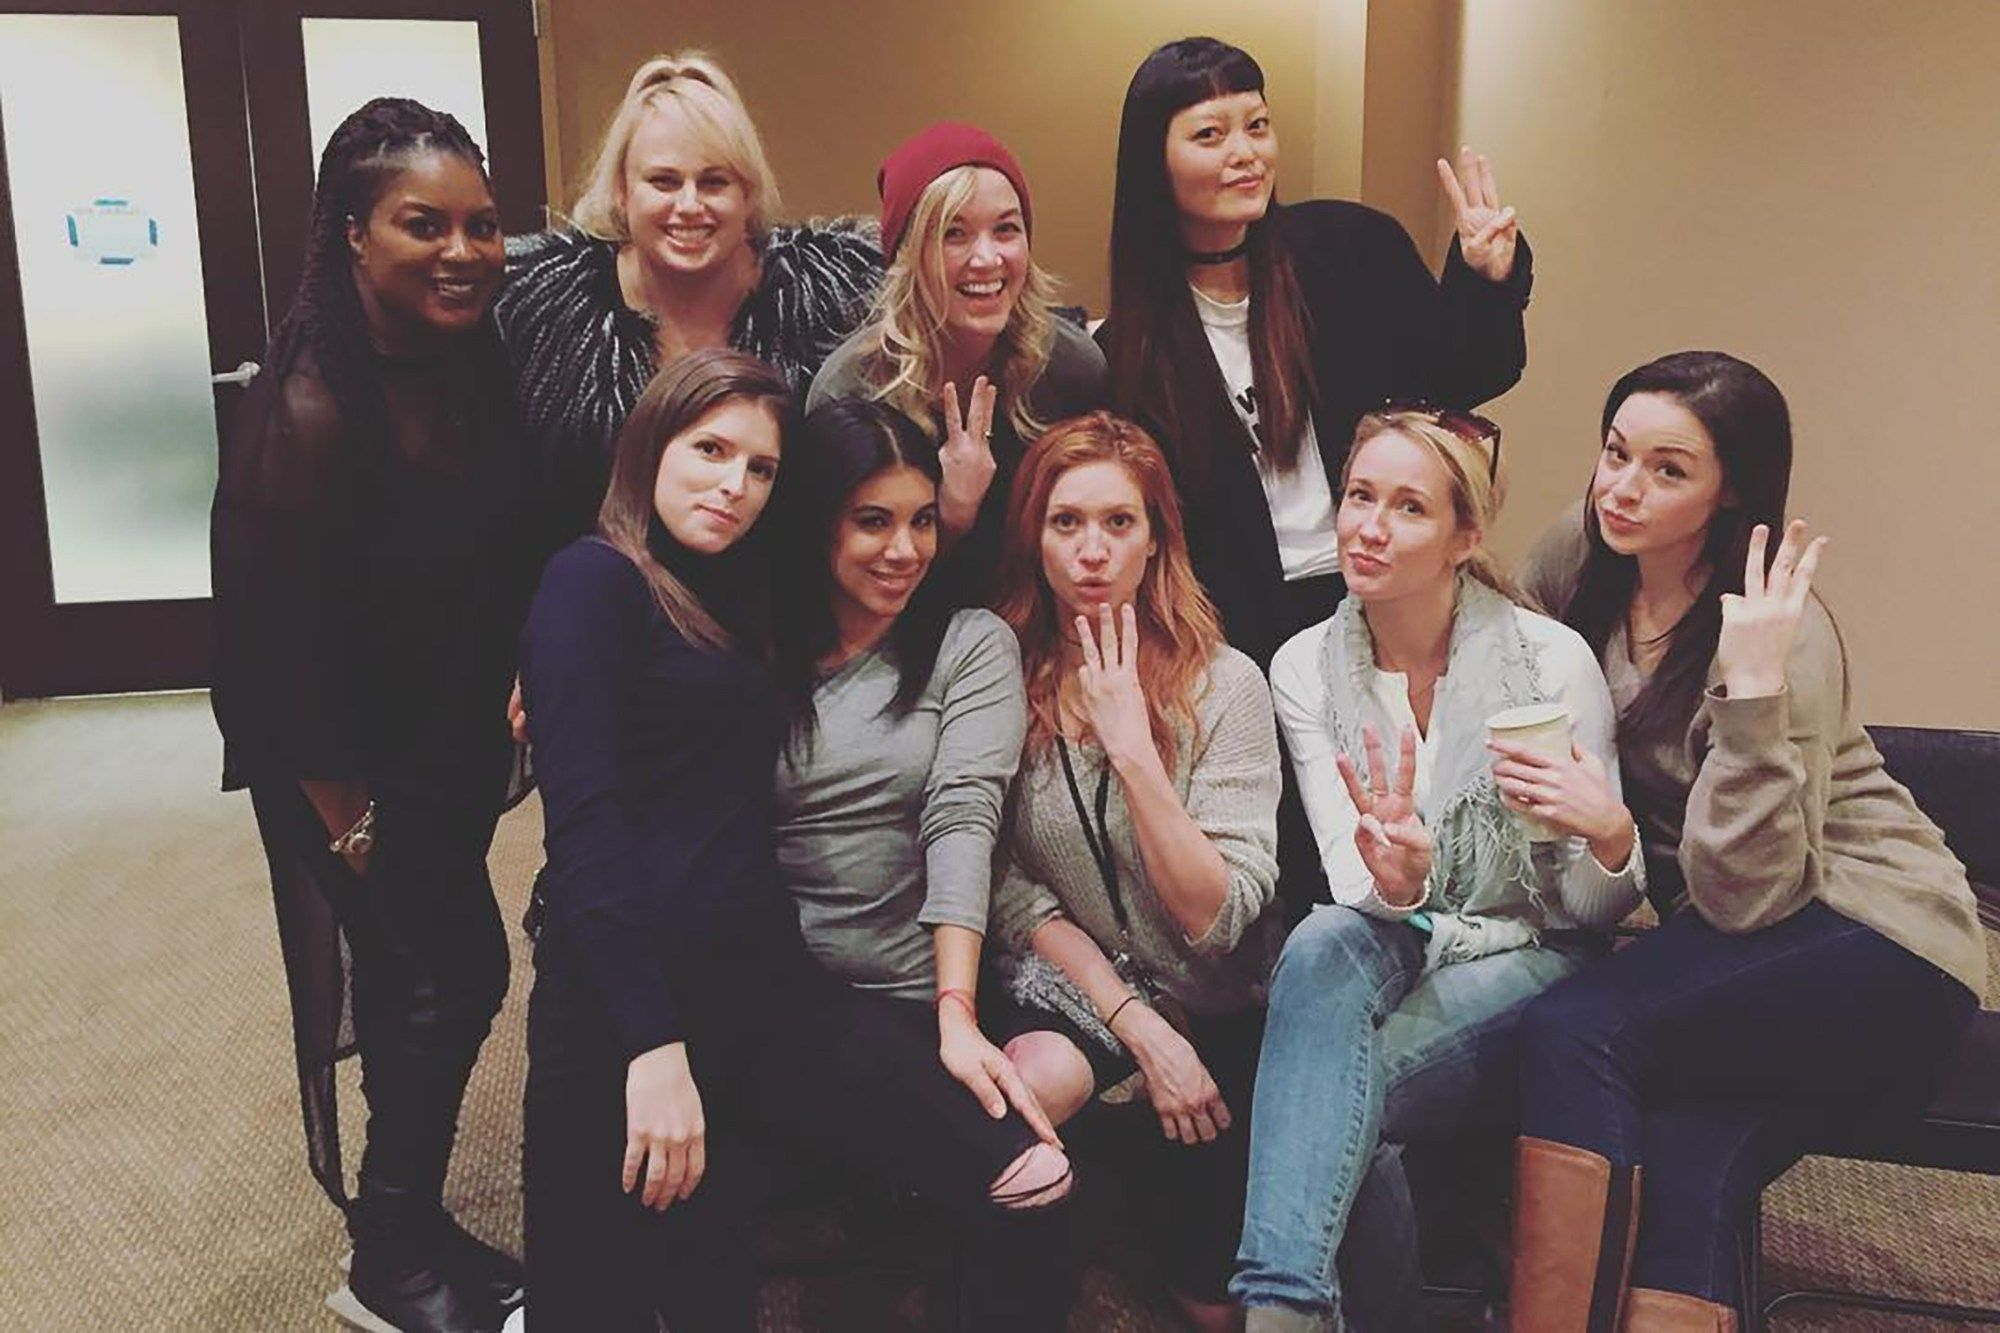 The Bellas Are Back See Pitch Perfect 3 Cast Photos Filmes